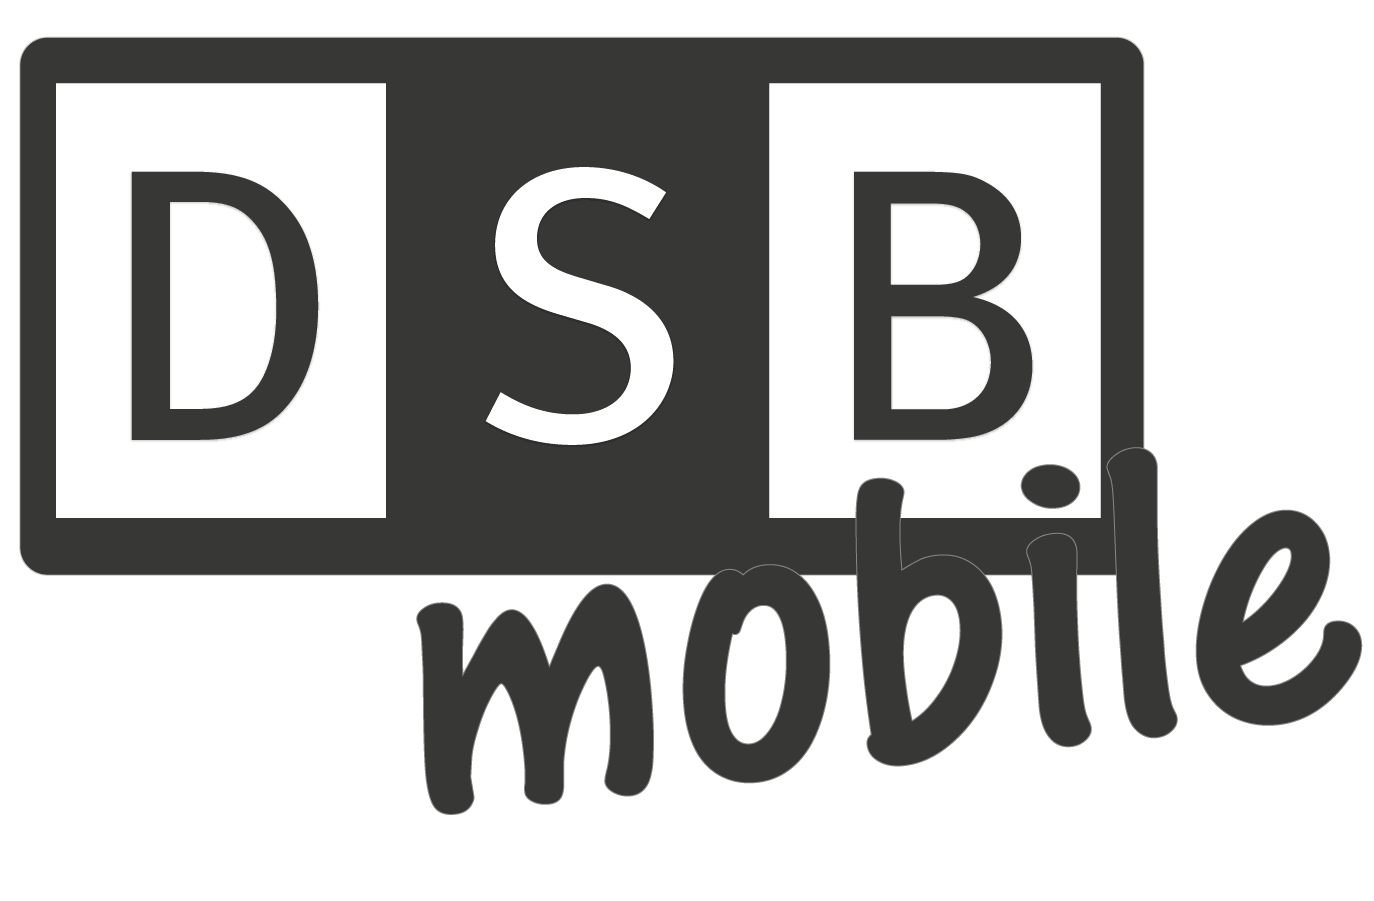 https://www.dsbmobile.de/img/logo_dsbmobile.png